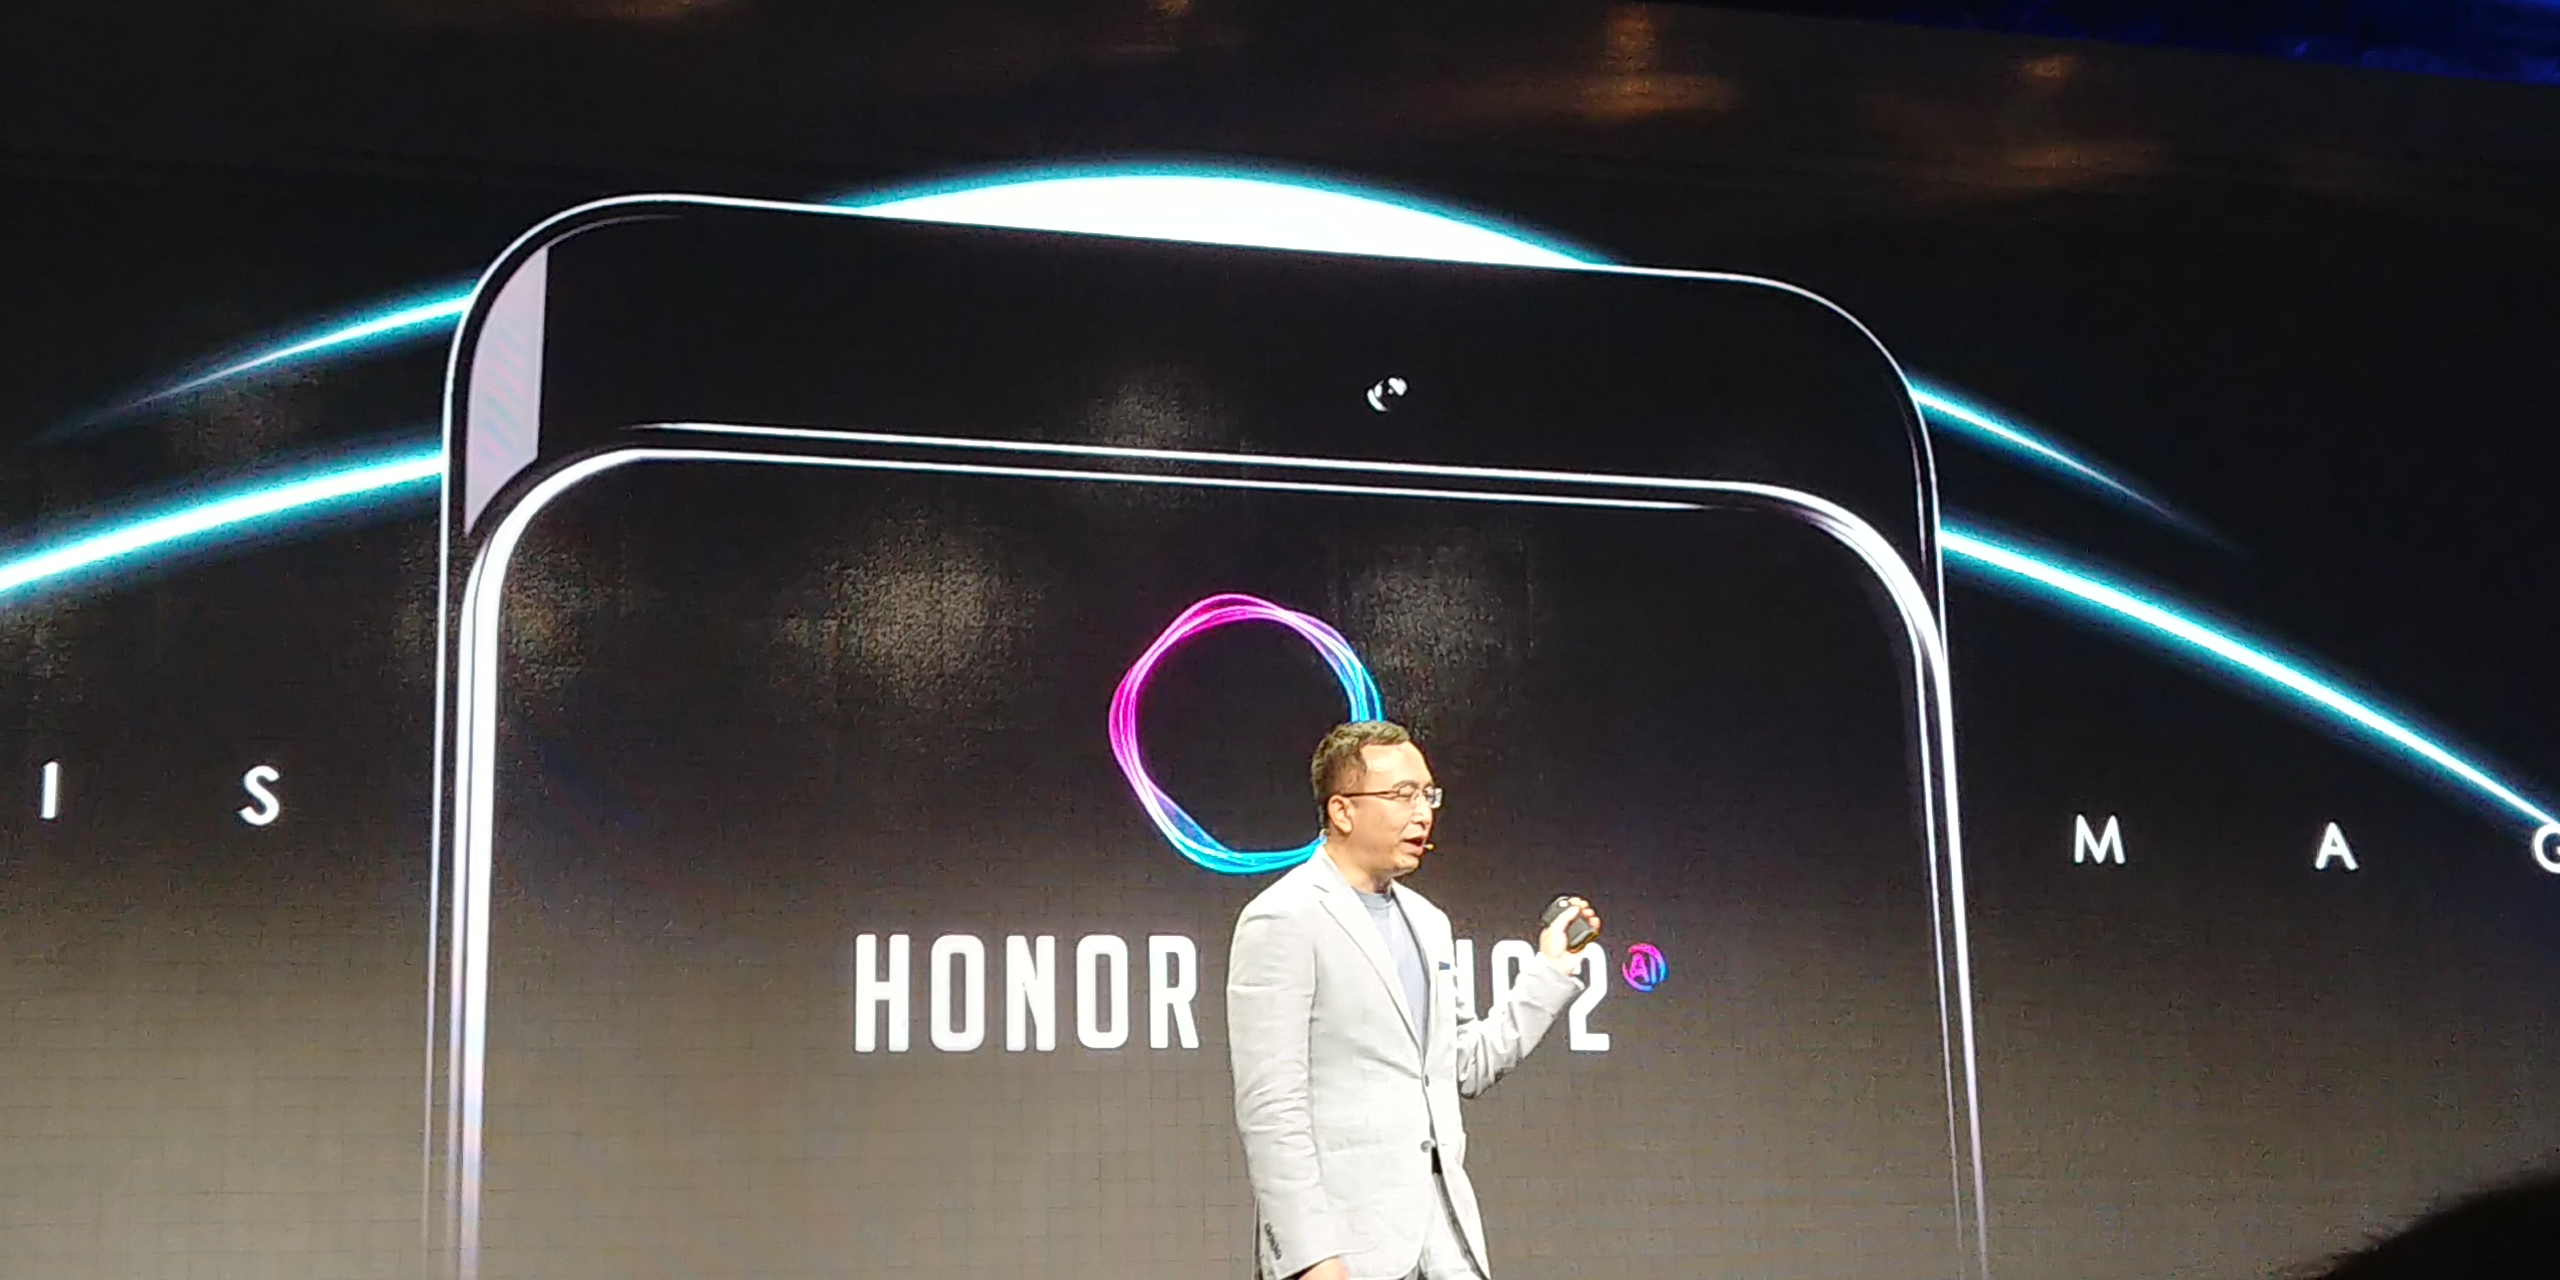 Huawei embraces sliding phones with Honor Magic 2